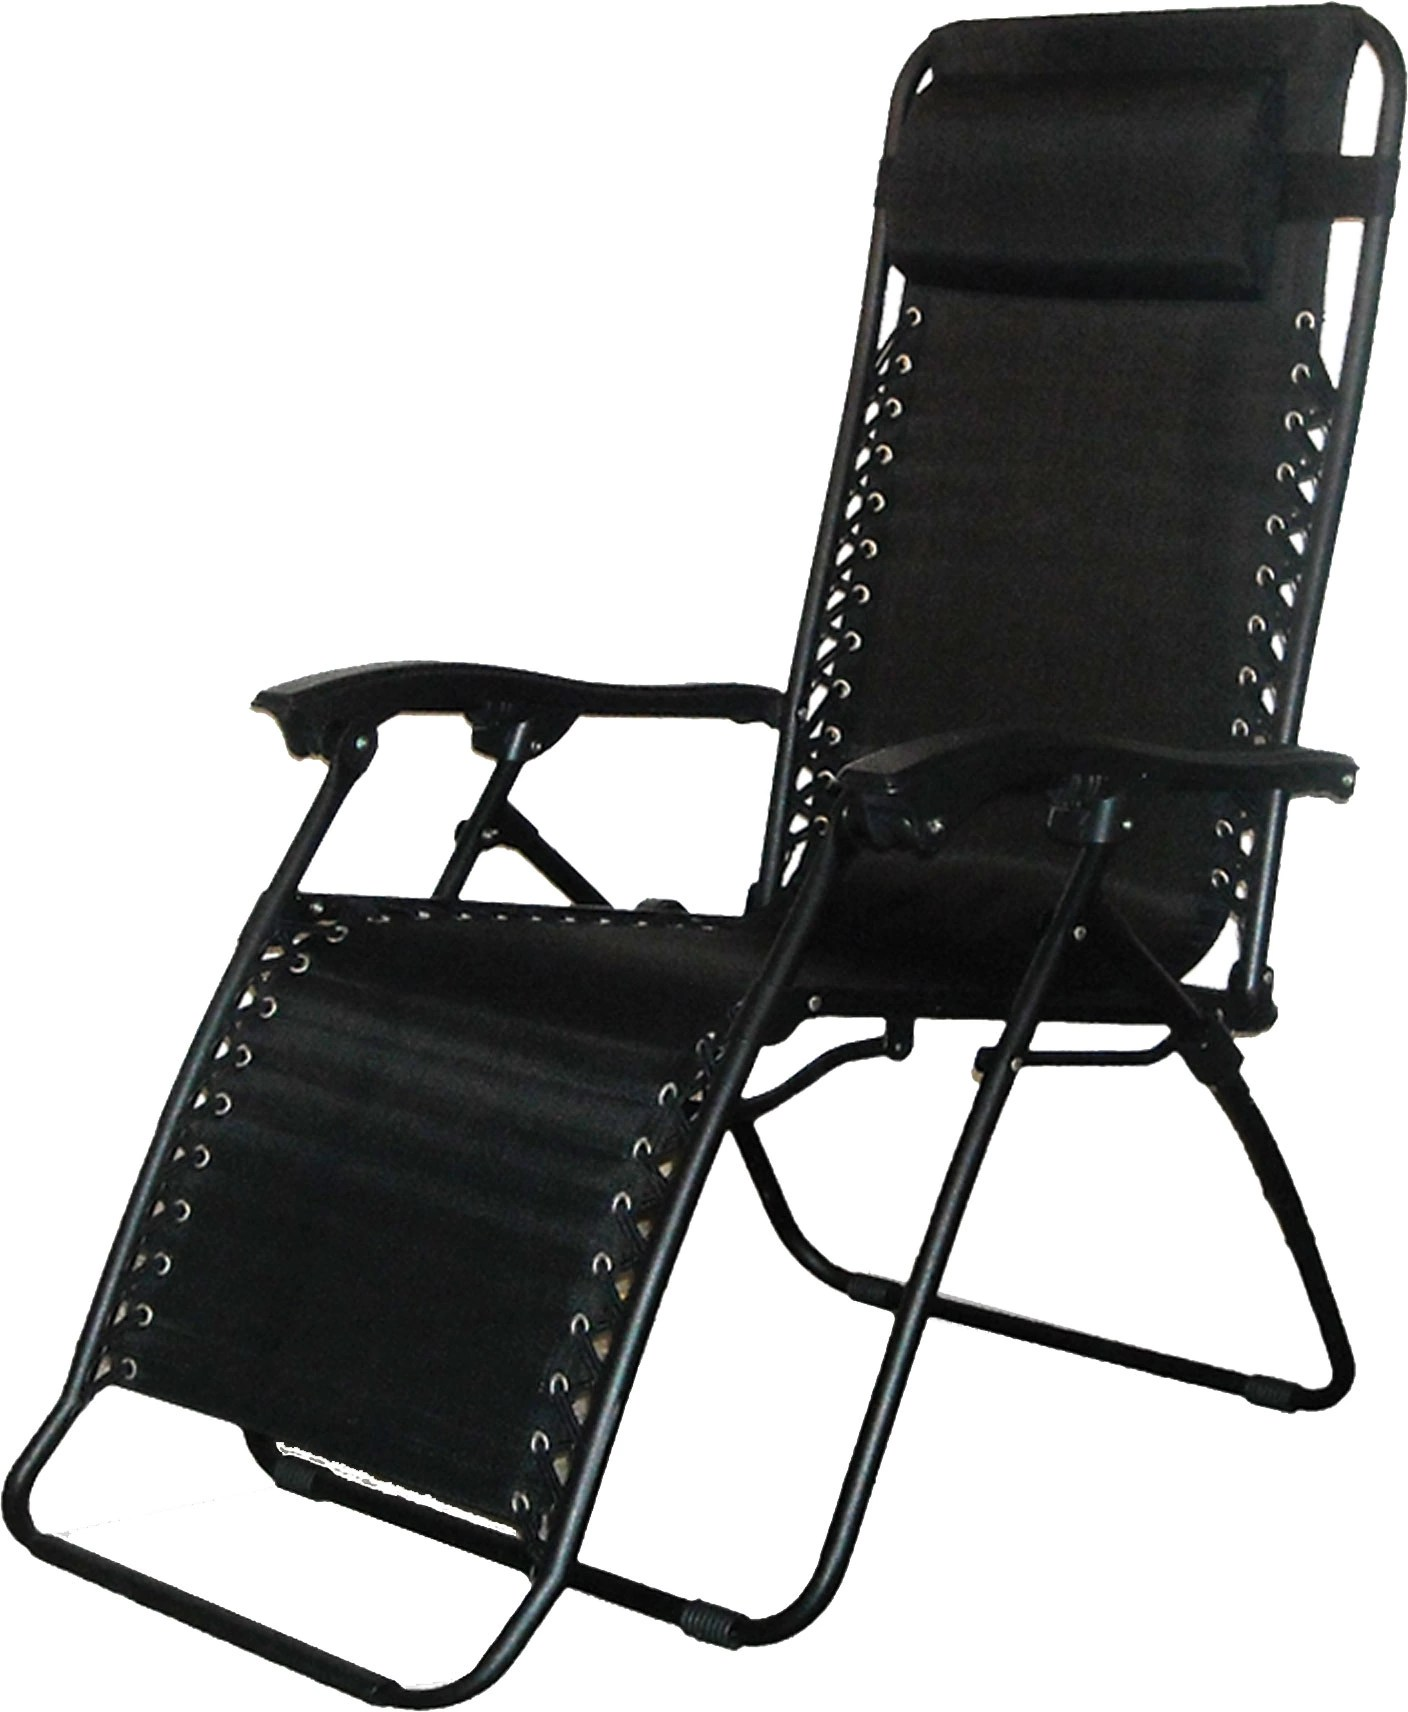 sonoma anti gravity chair review old wooden folding church chairs caravan infinity zero dick s sporting goods